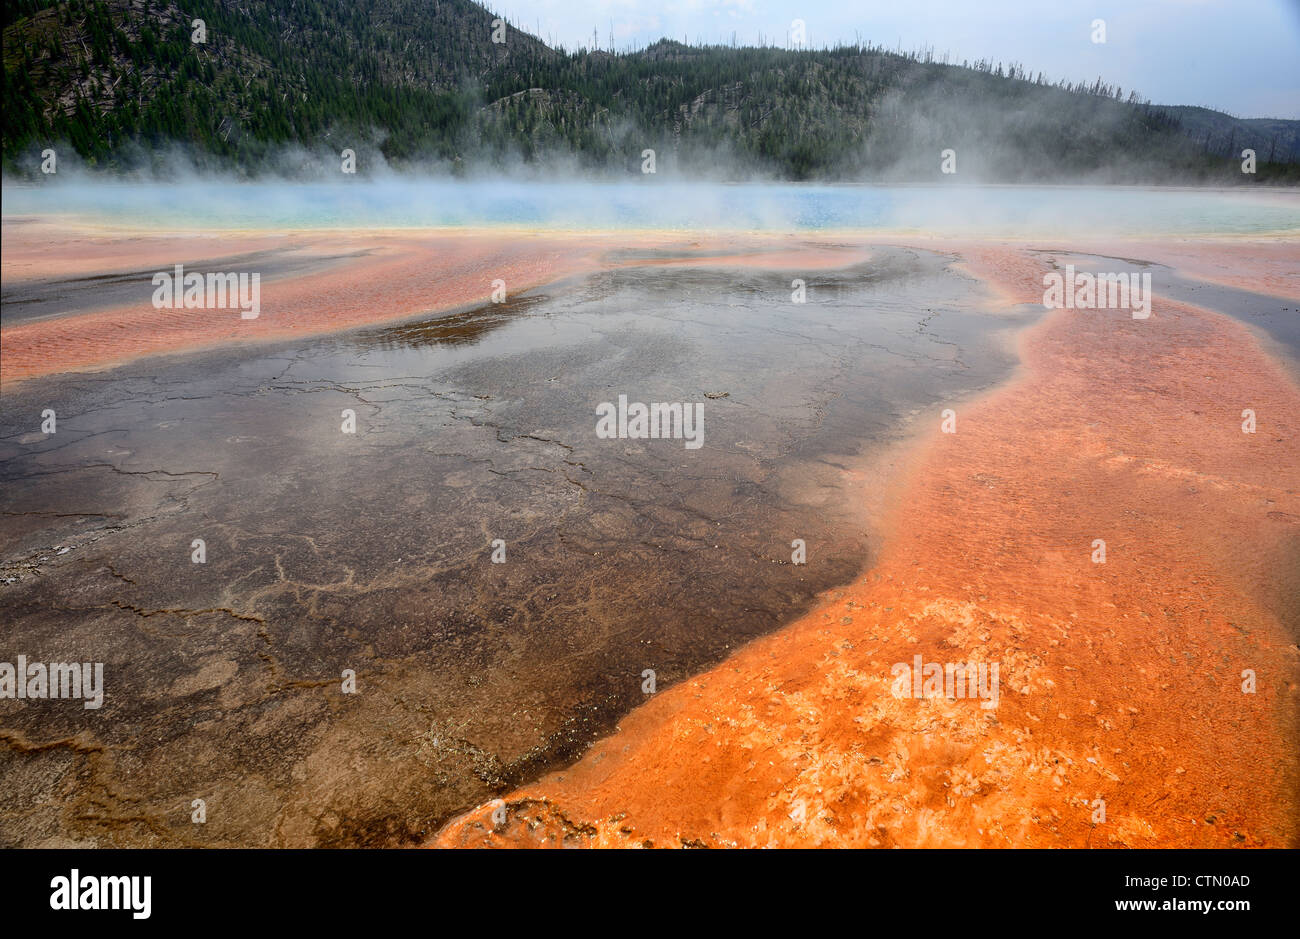 Grand Prismatic Spring and abstract patterns in mud, Midway Geyser Basin, Yellowstone National Park, Wyoming, USA - Stock Image